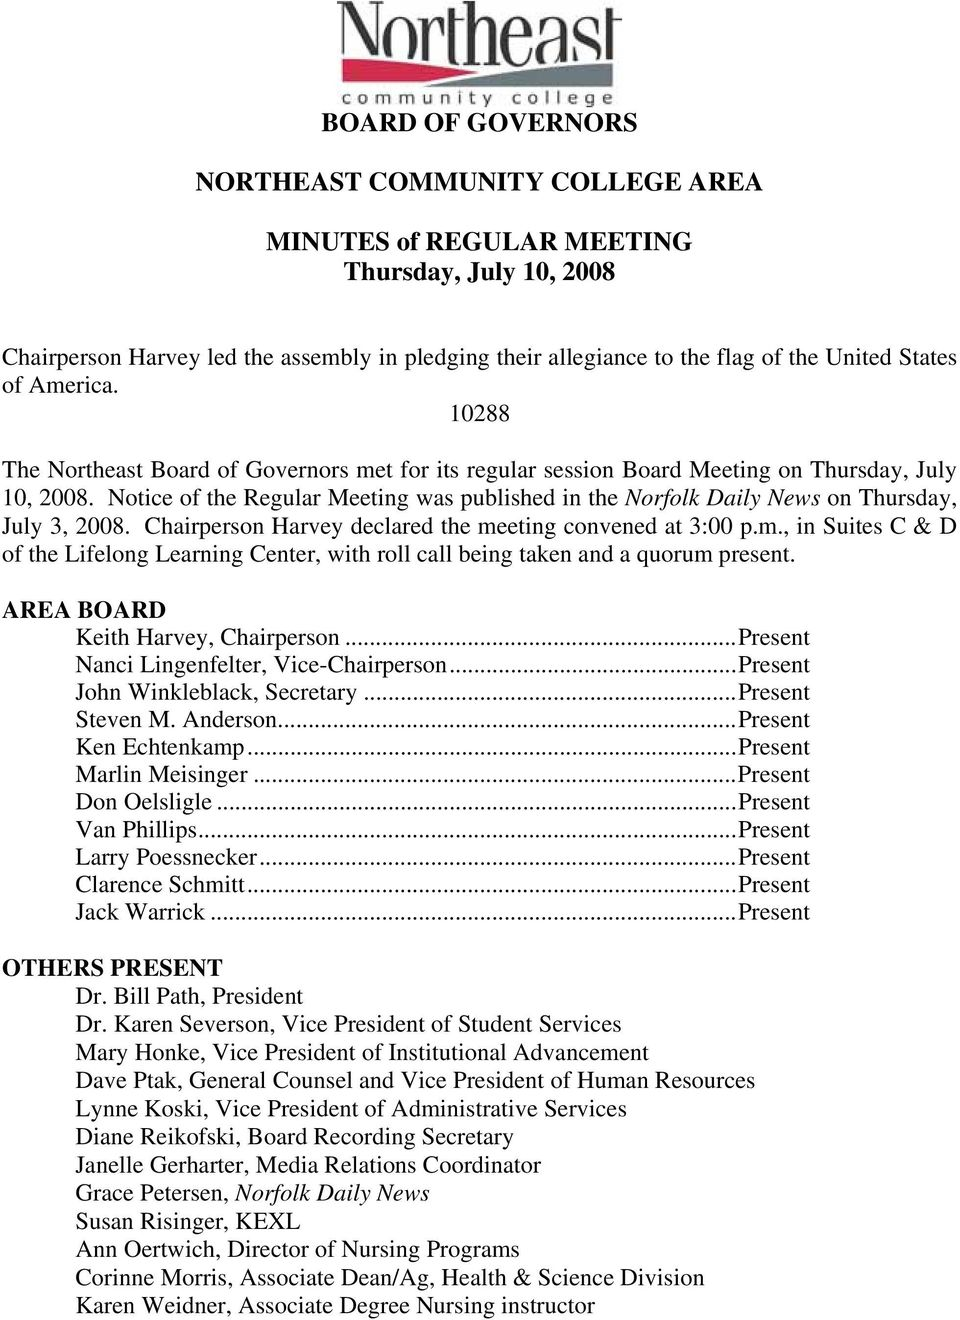 Notice of the Regular Meeting was published in the Norfolk Daily News on Thursday, July 3, 2008. Chairperson Harvey declared the me